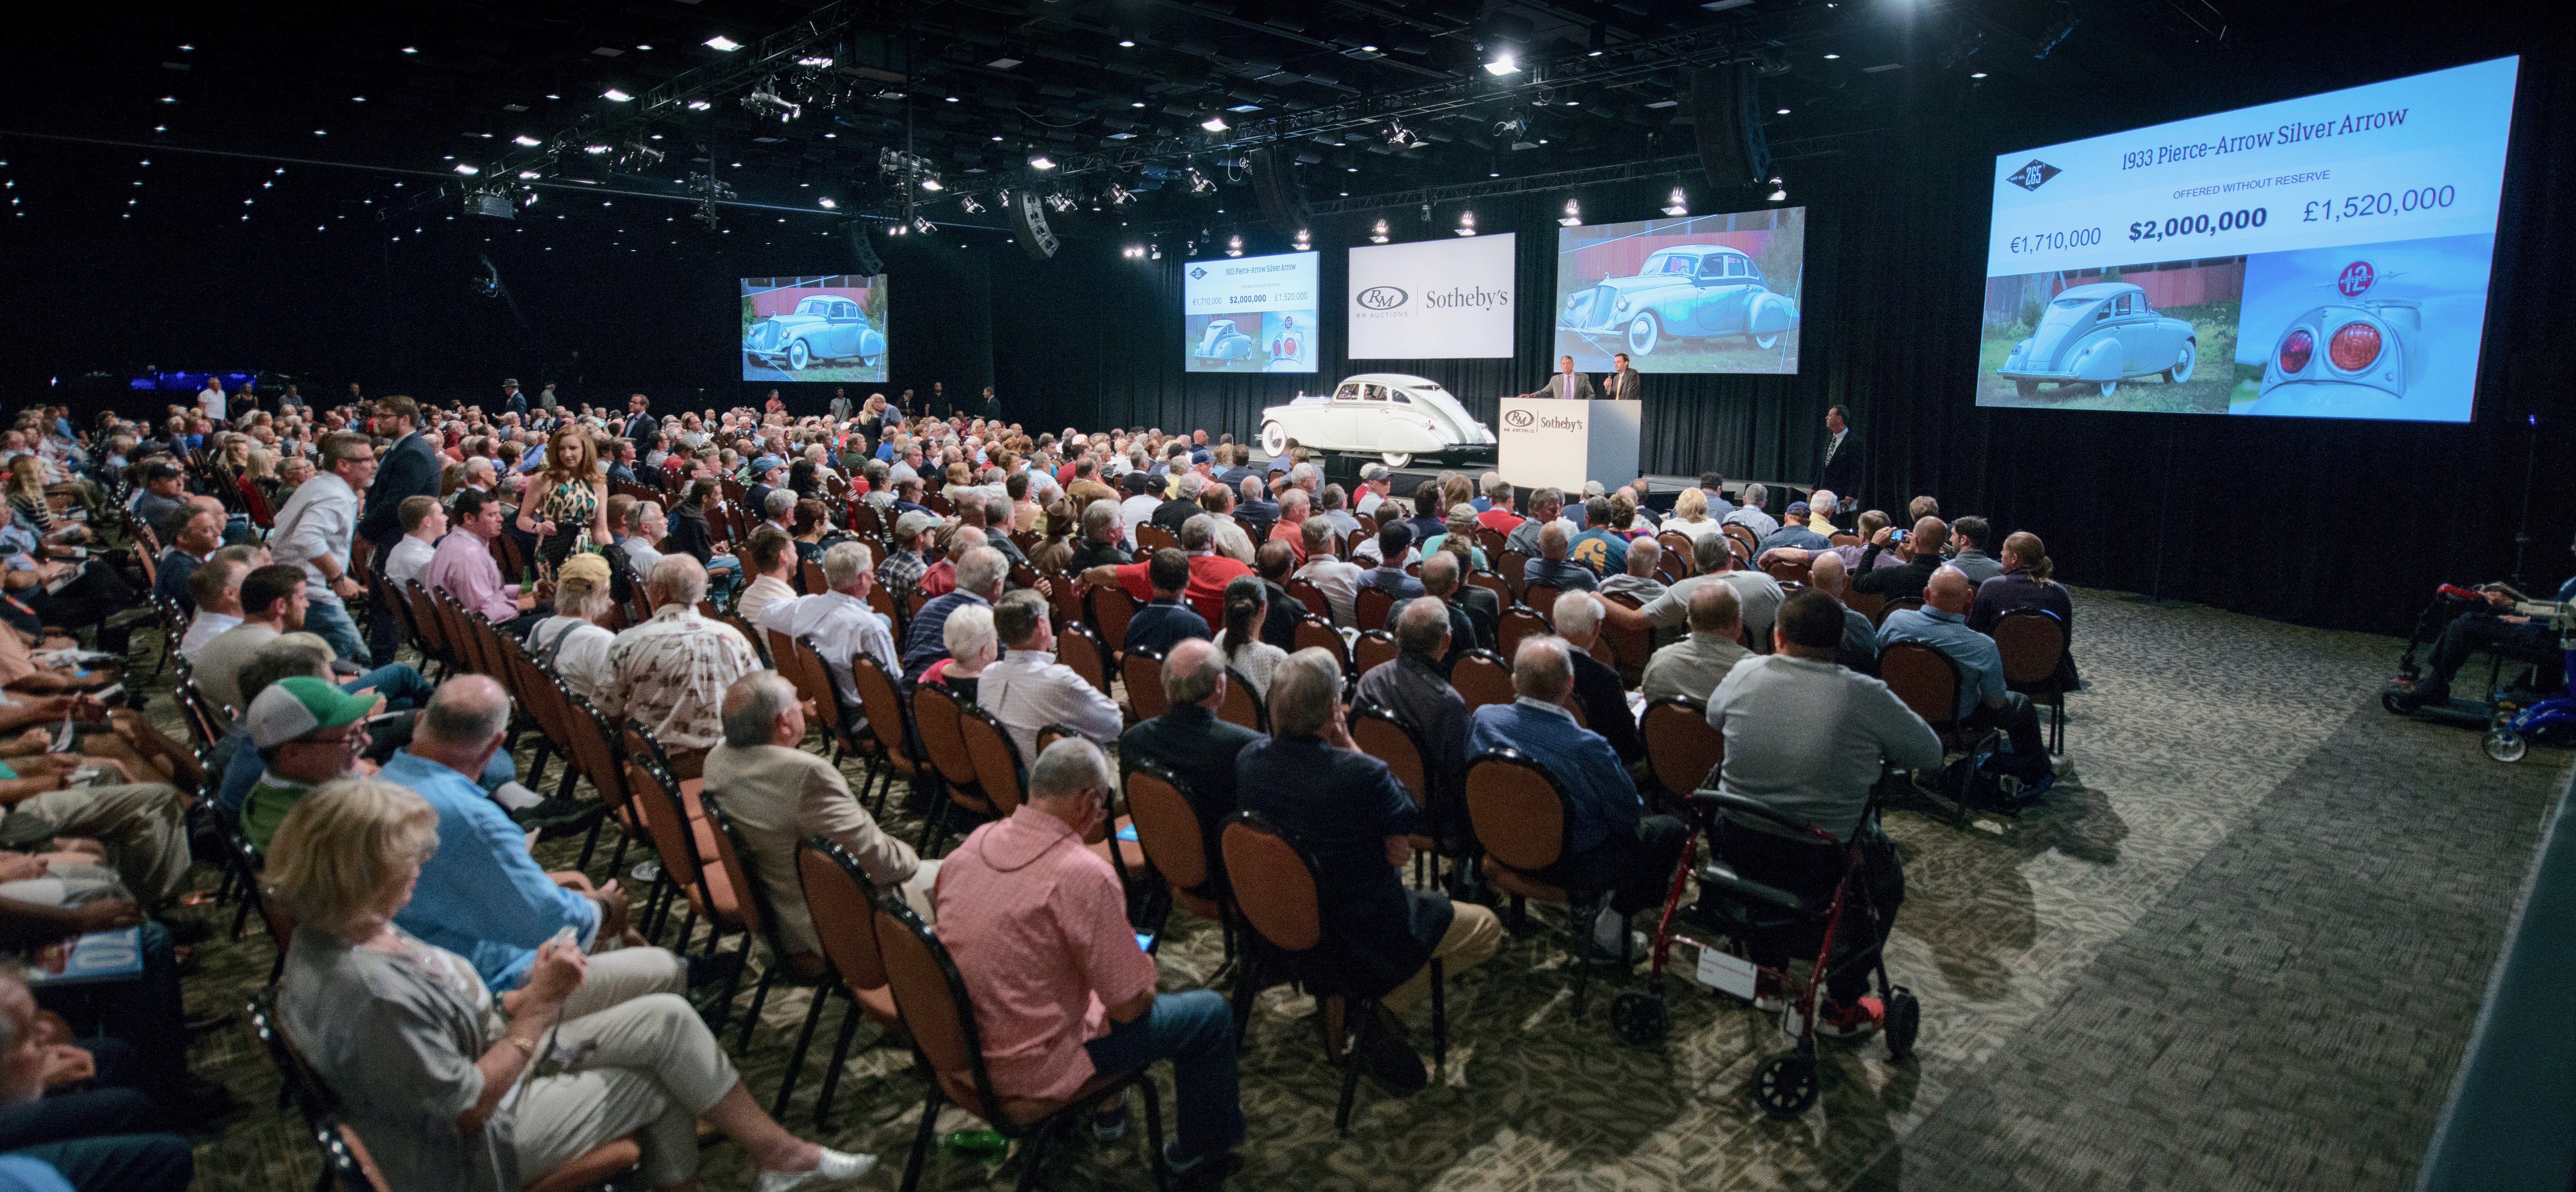 Hershey, American classics dominate RM auction at Hershey, ClassicCars.com Journal